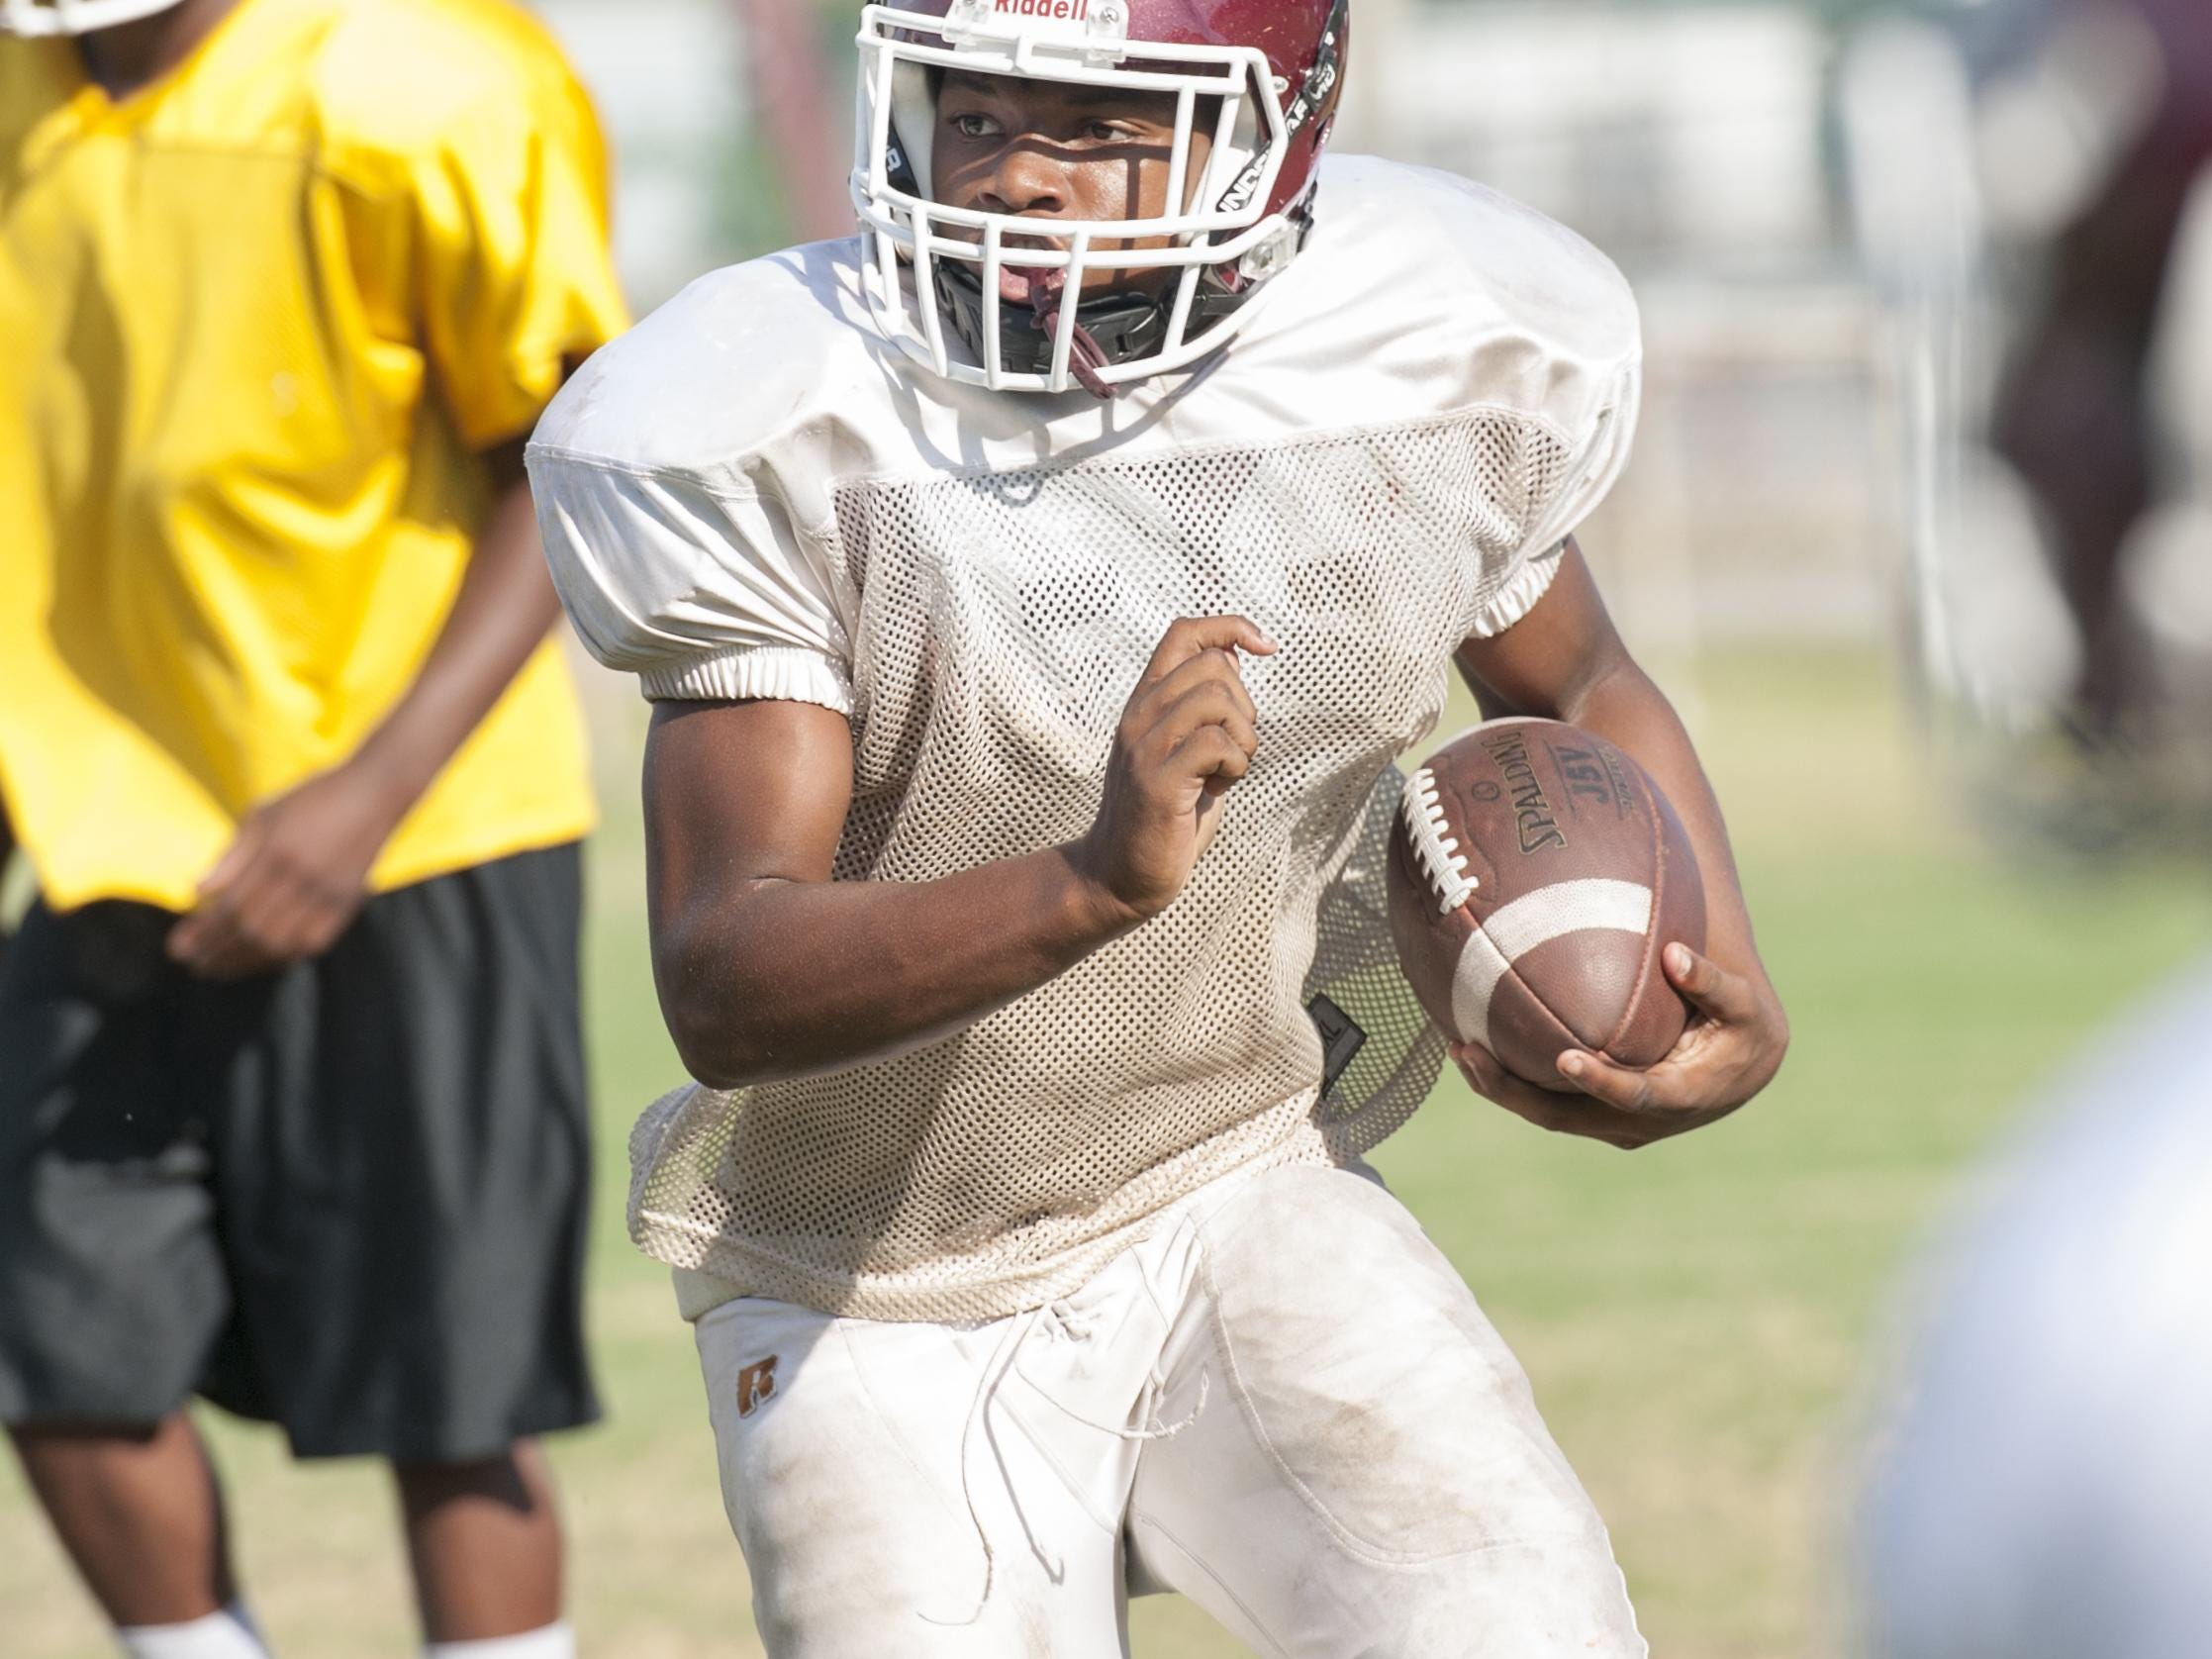 Football practice at Pensacola High School in Pensacola, FL on Monday, August 15, 2016.